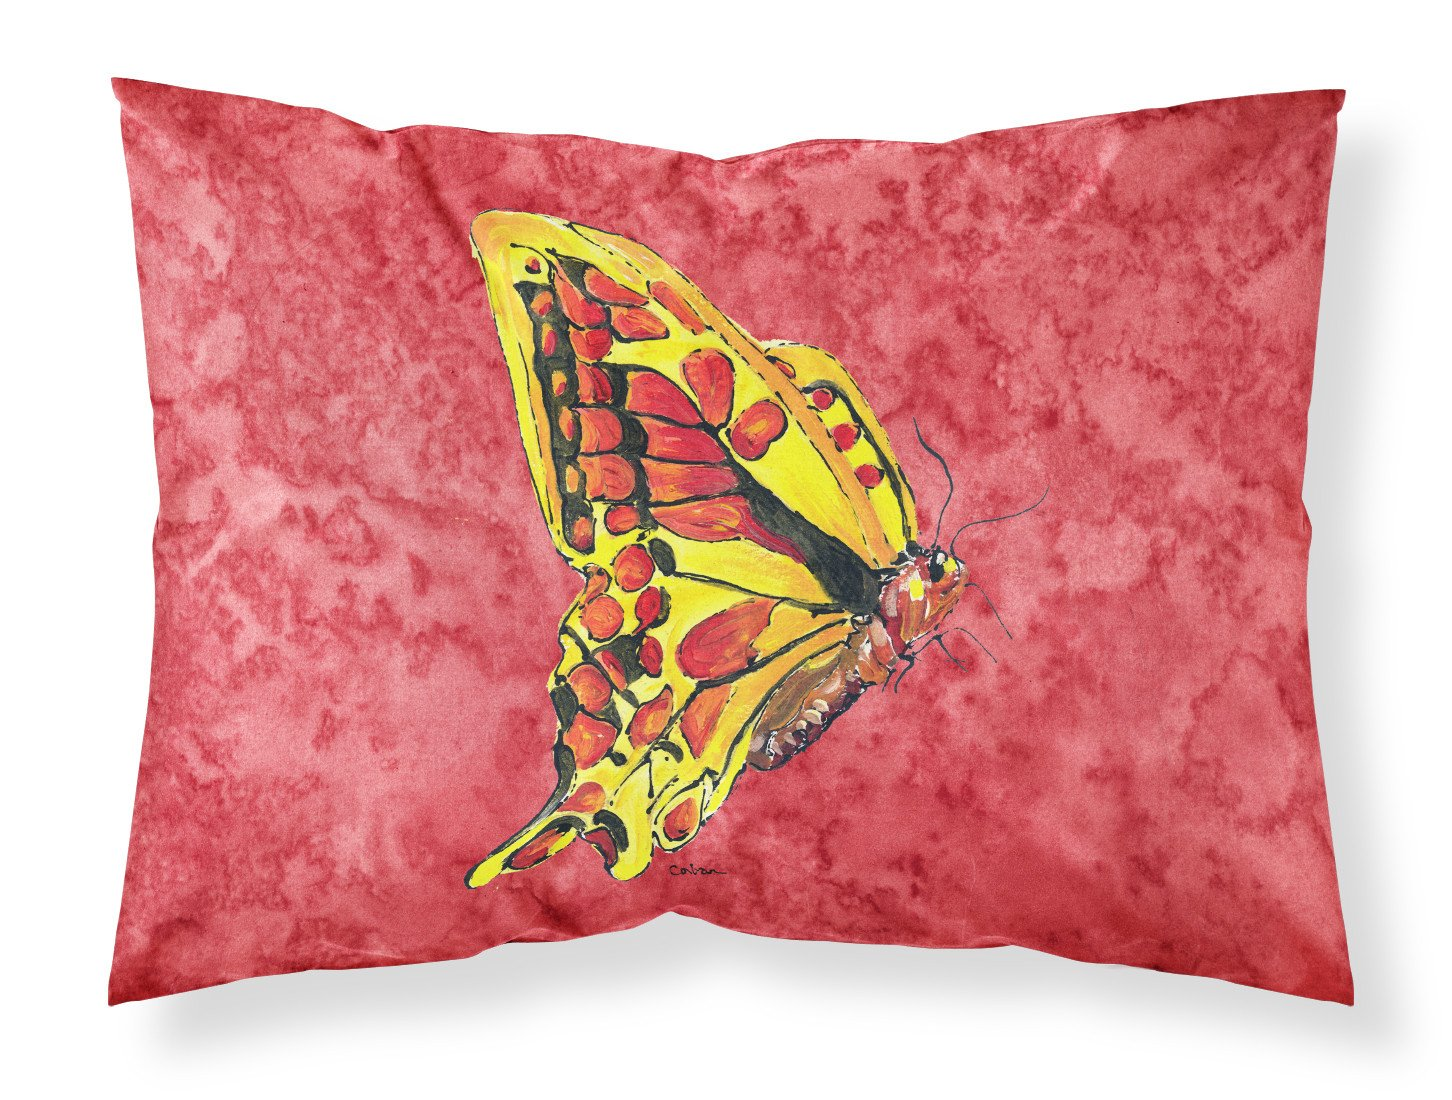 Butterfly on Red Moisture wicking Fabric standard pillowcase by Caroline's Treasures